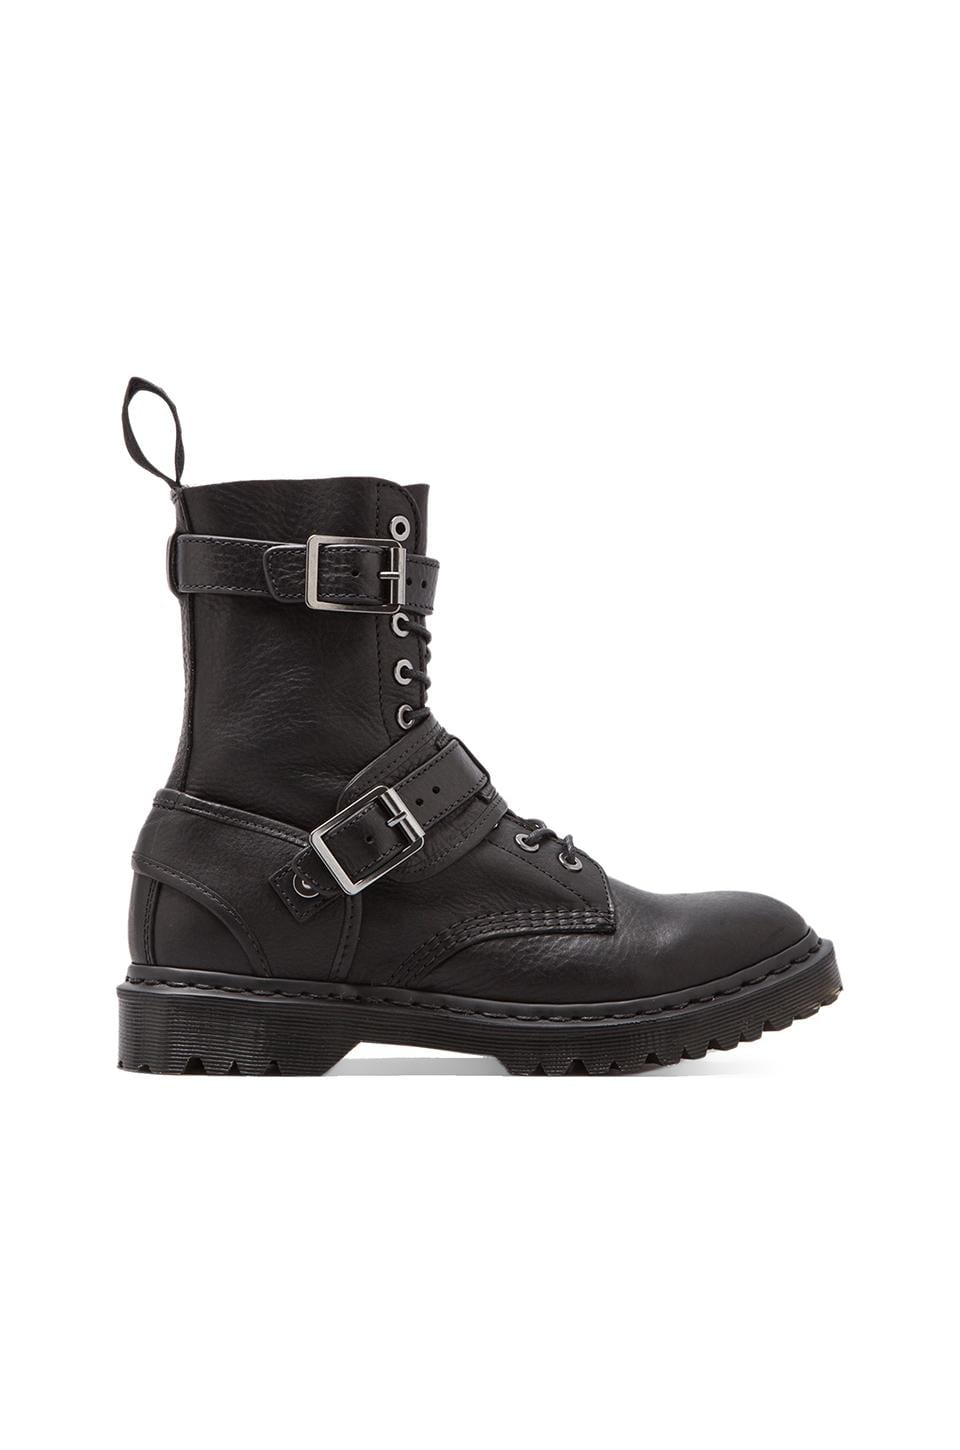 Dr. Martens Dalton Buckle Lace Boot in Black